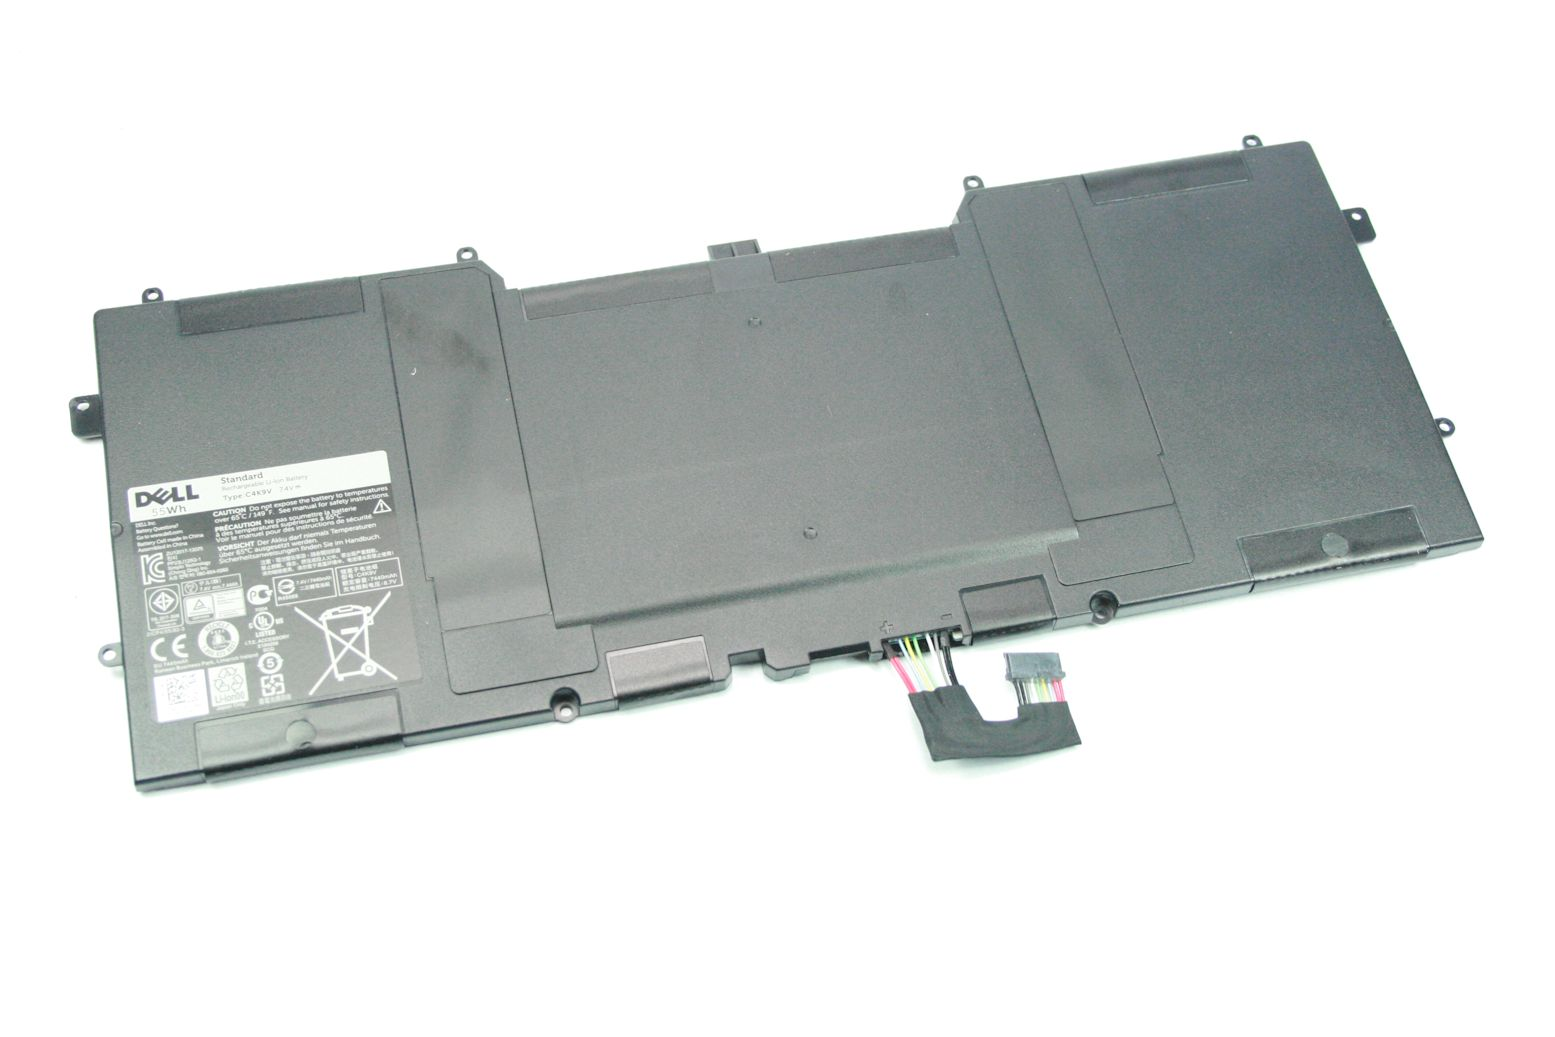 DELL XPS 12 13 55Wh 6 Zellen Akku Battery Batterie PKH18